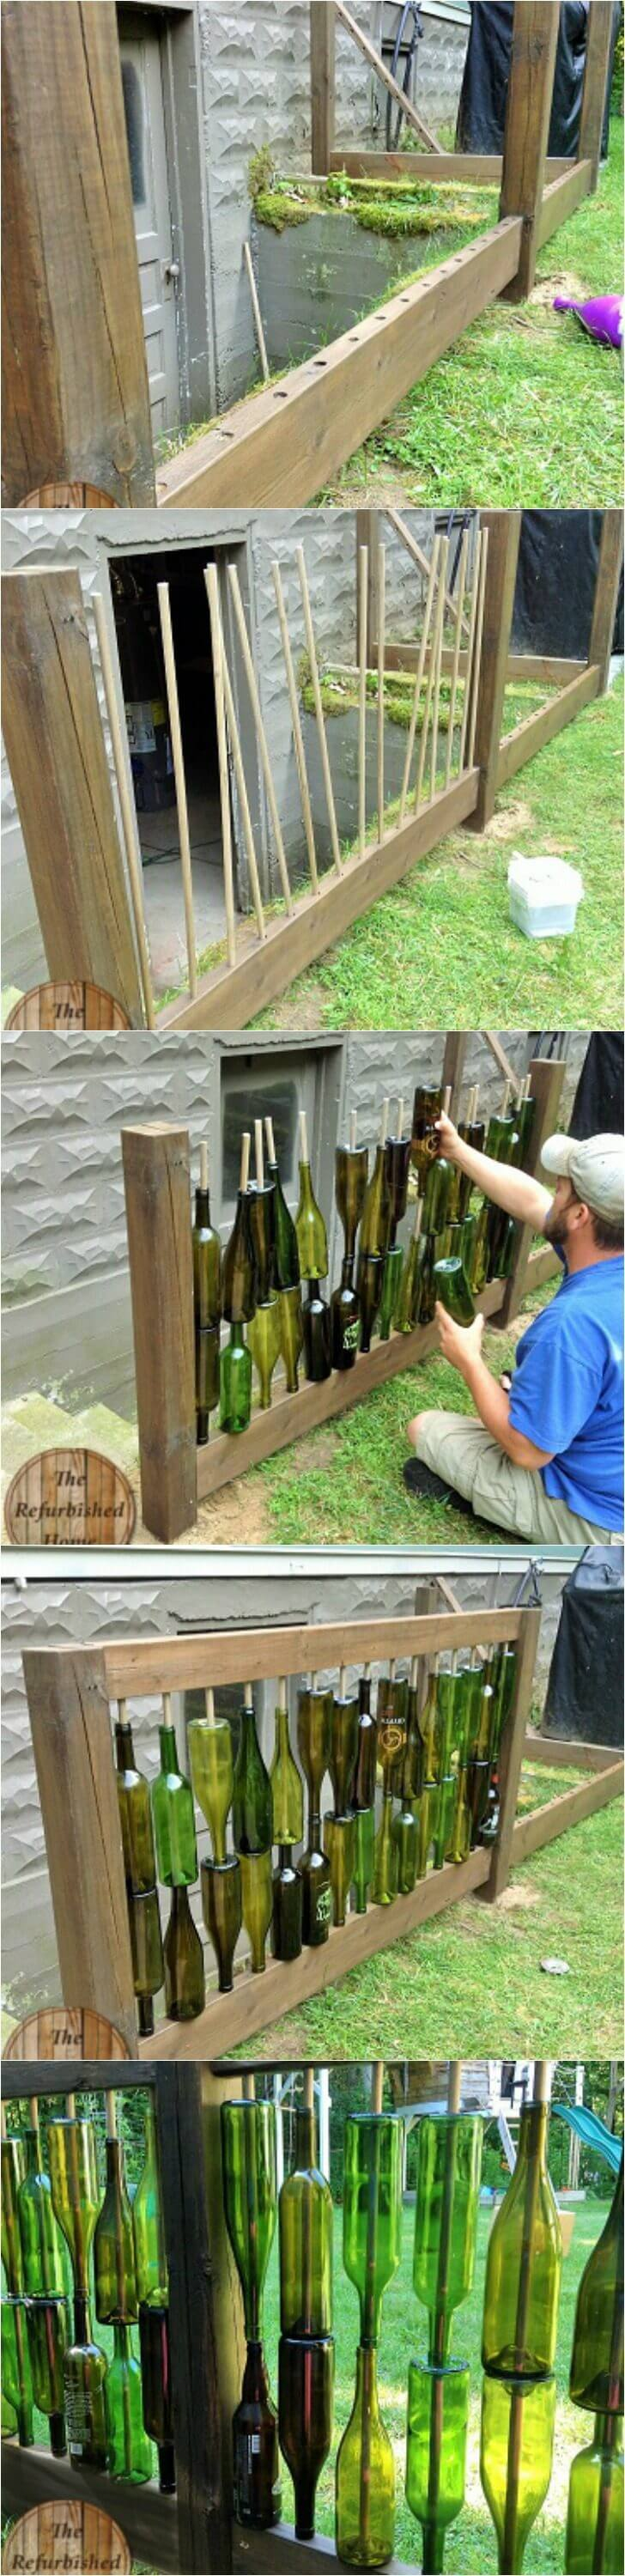 A DIY Wine Bottle Backyard Centerpiece